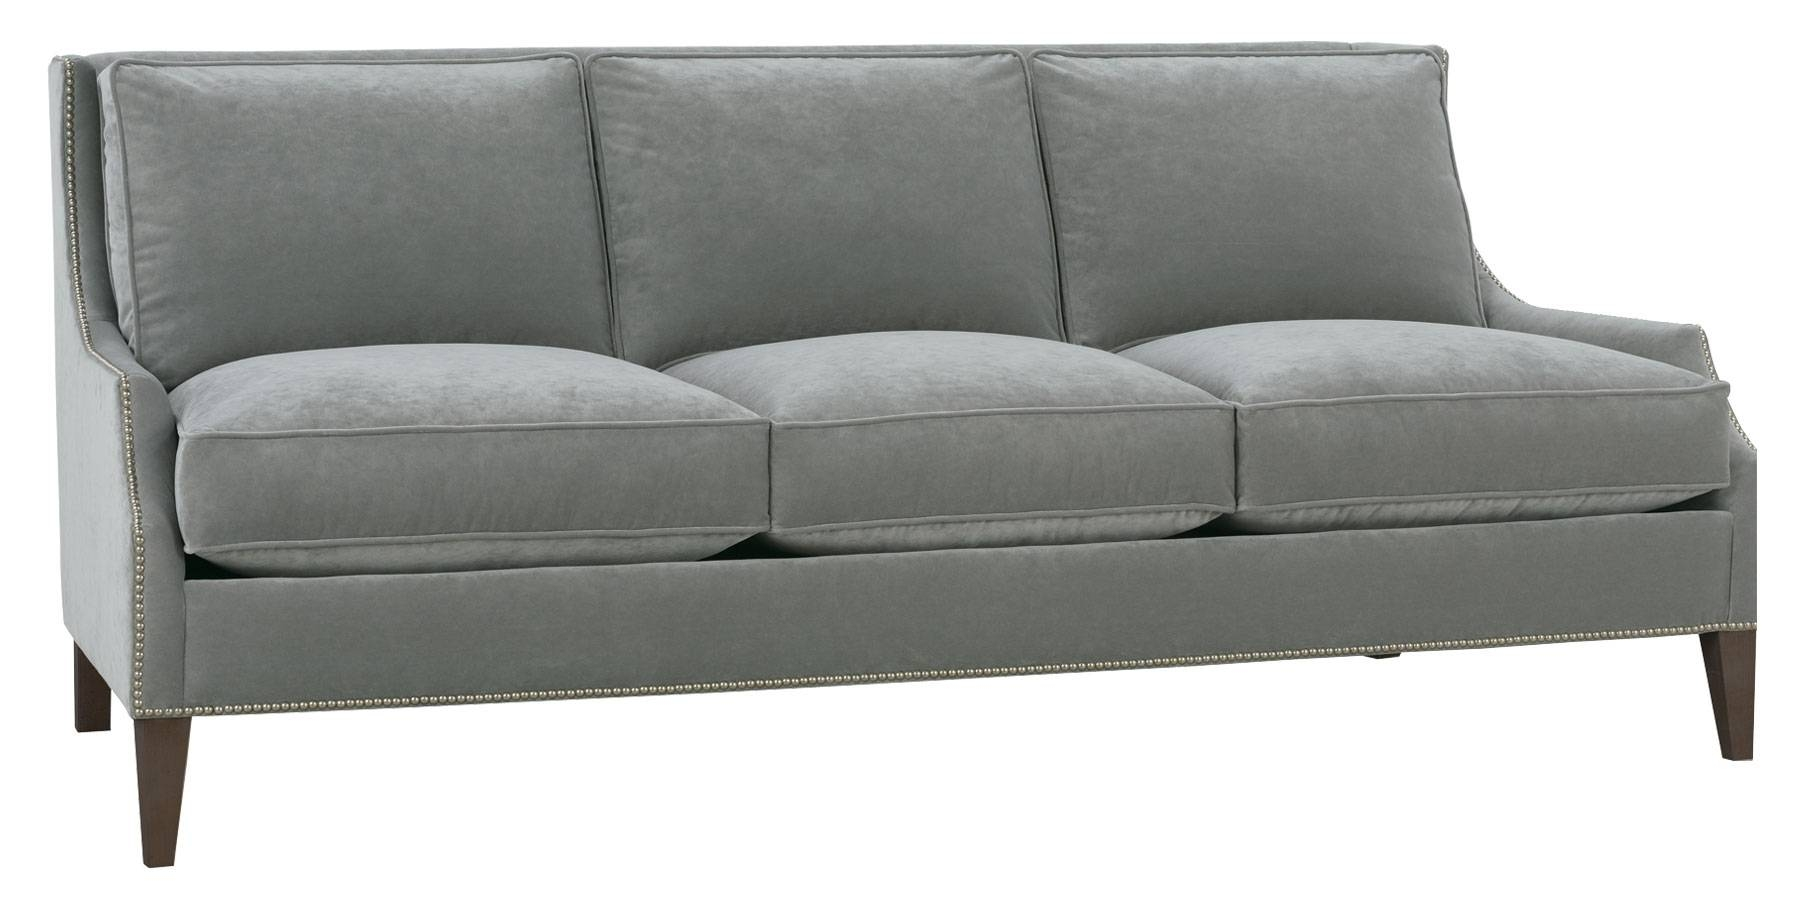 Lafayette Apt Size Sofa Amethyst Dda Afc Bdcec – Surripui Intended For Condo Size Sofas (View 9 of 15)